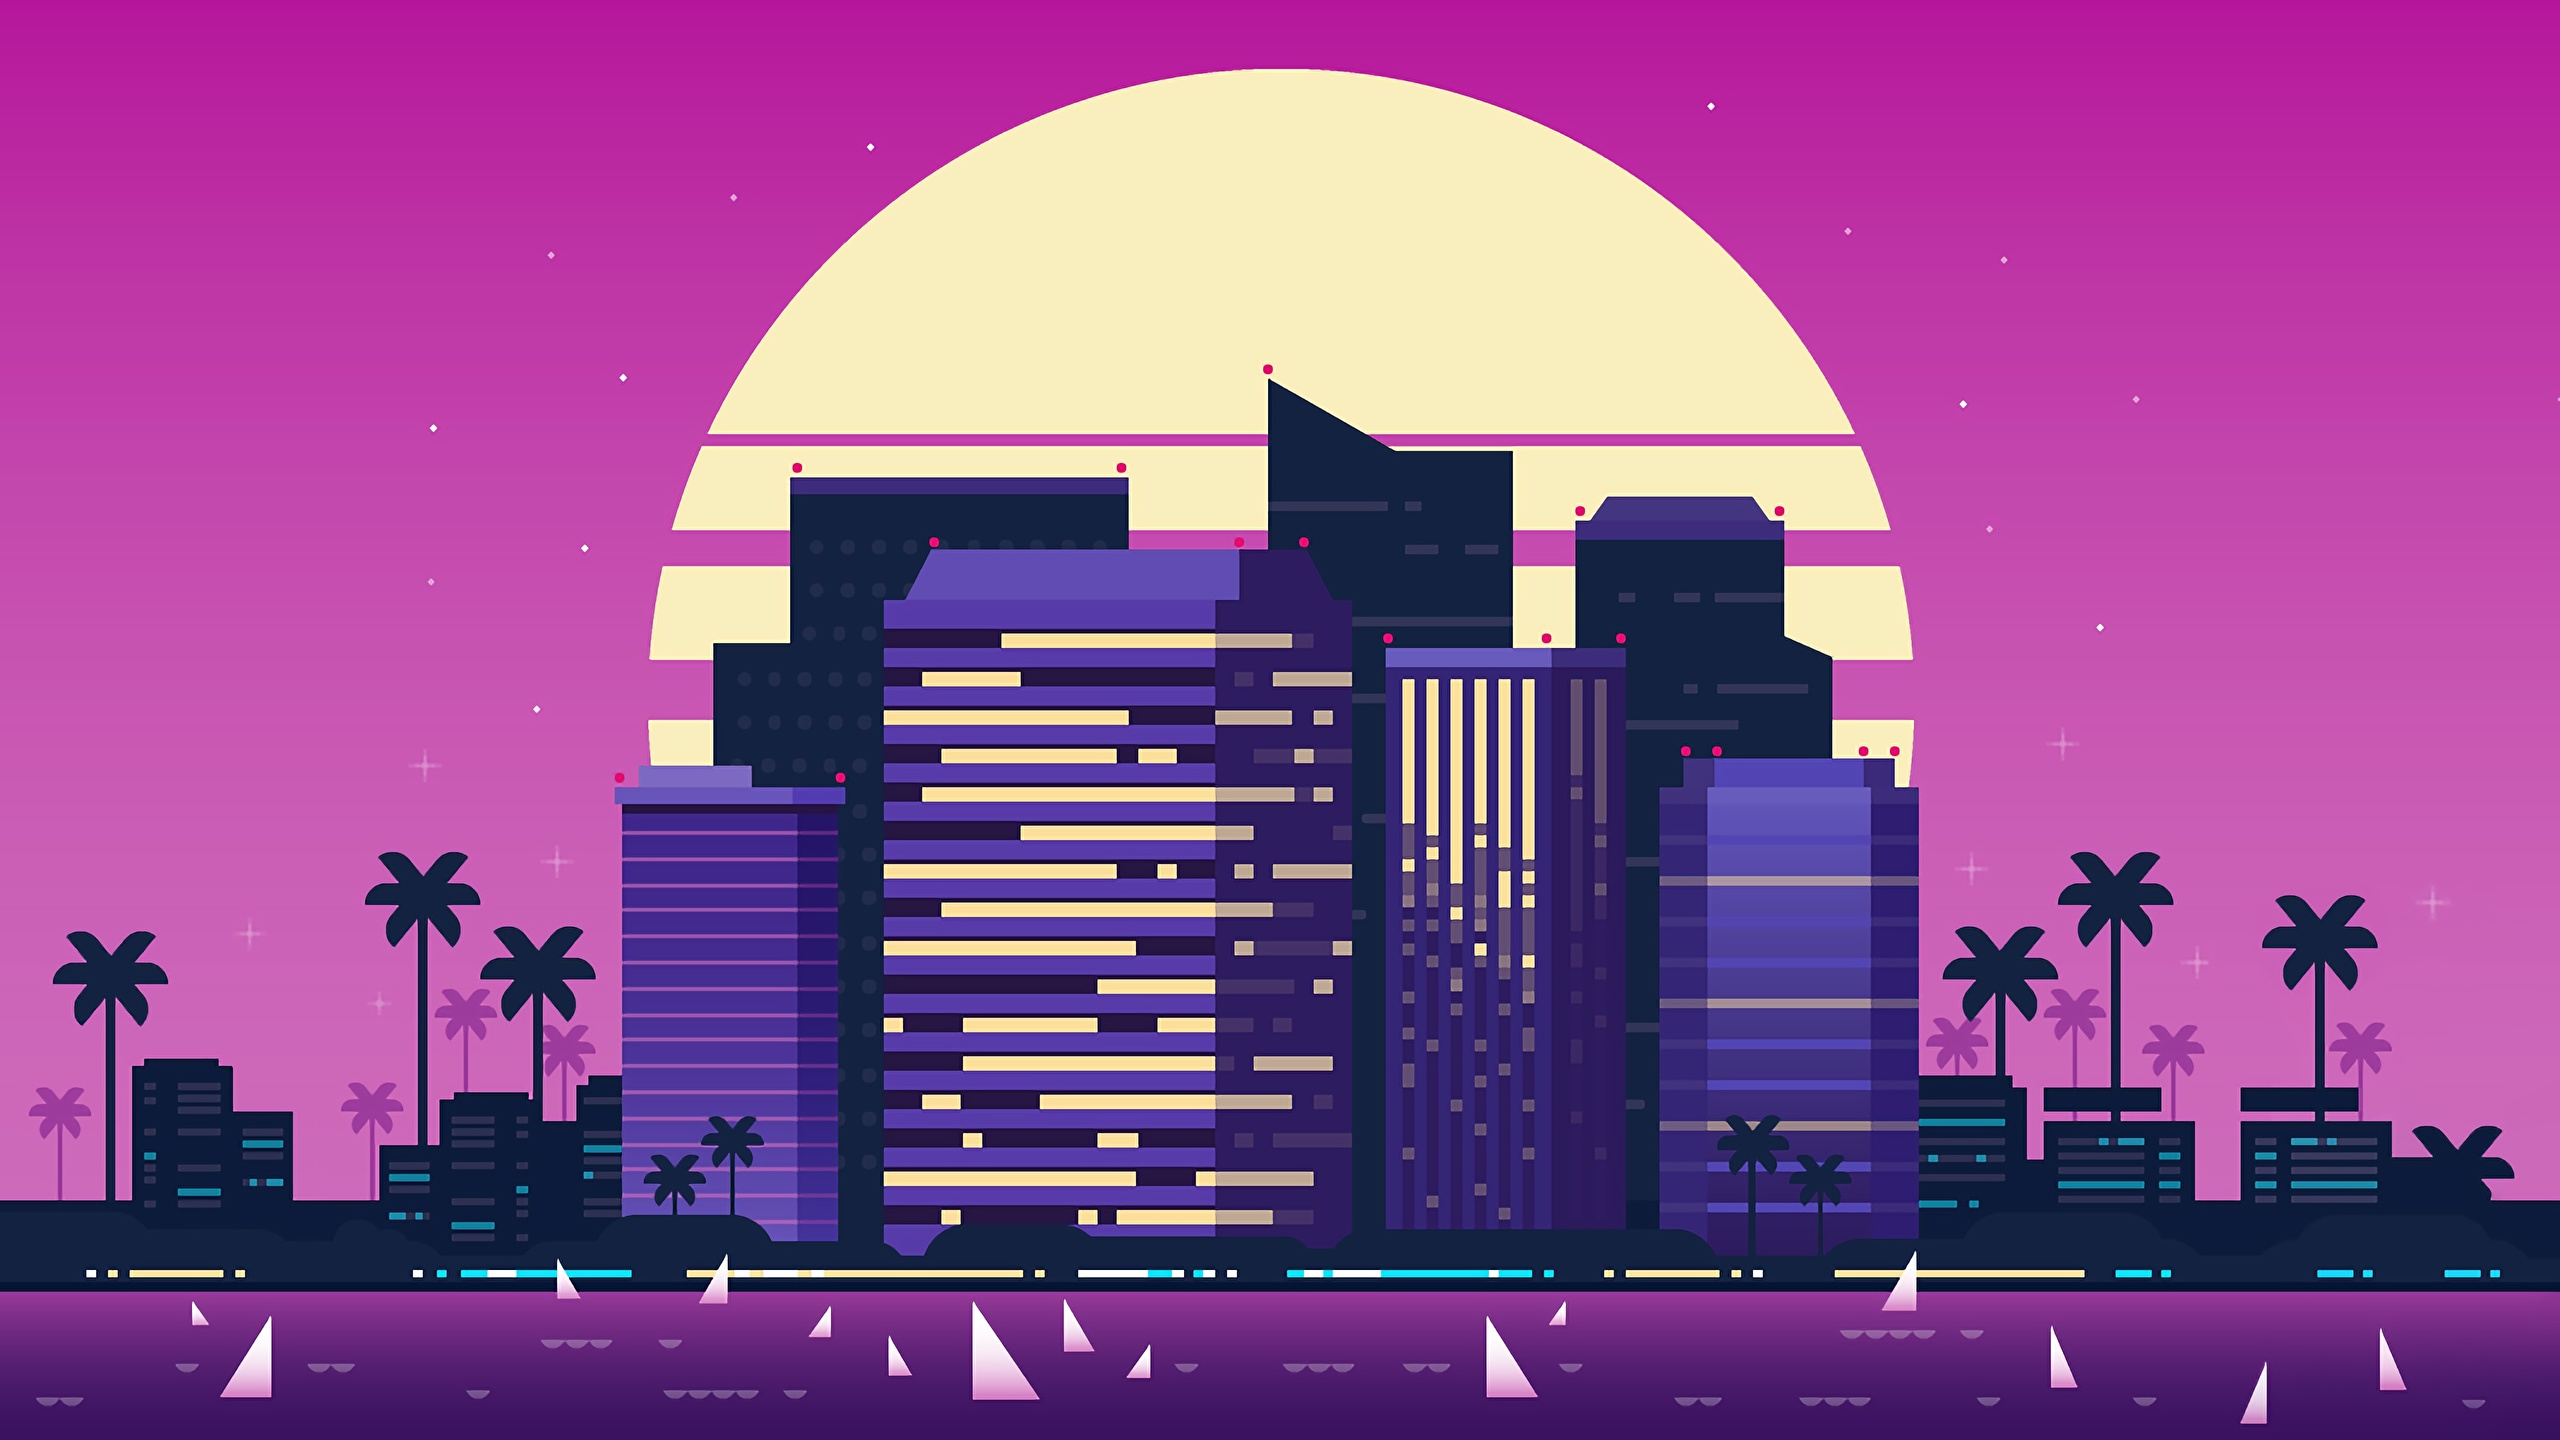 Image Synthwave Cities Building 2560x1440